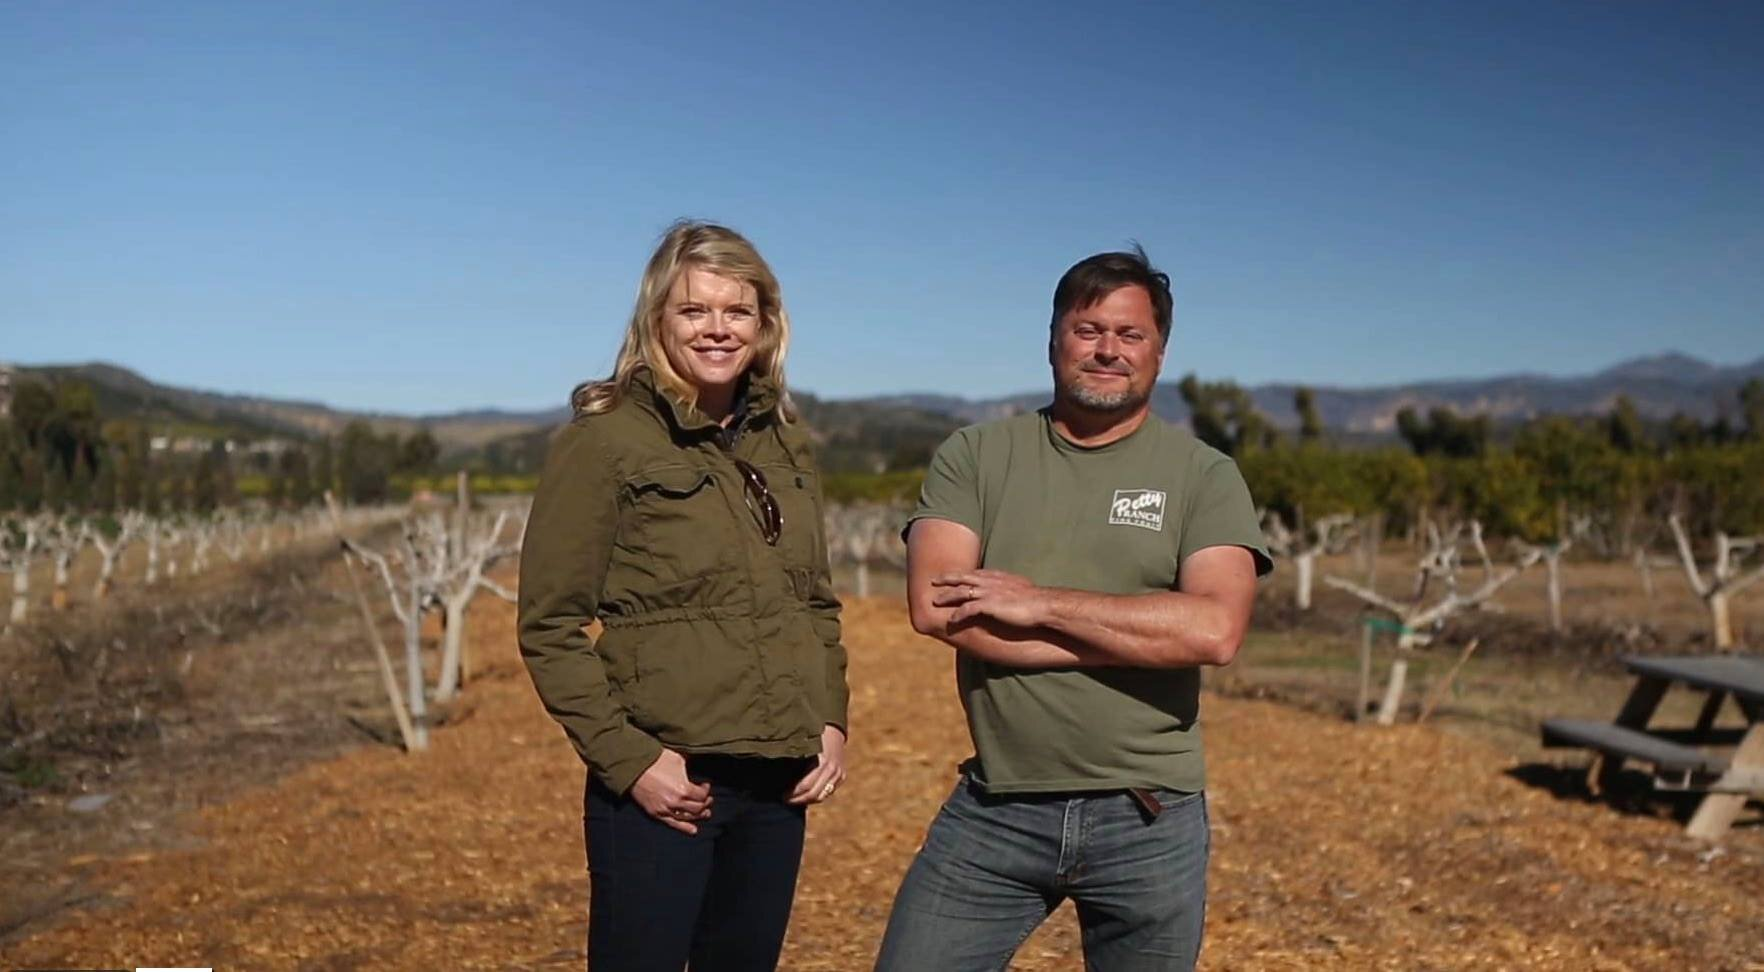 Chris Sayer and Mary Maranville at Petty Ranch.jpg